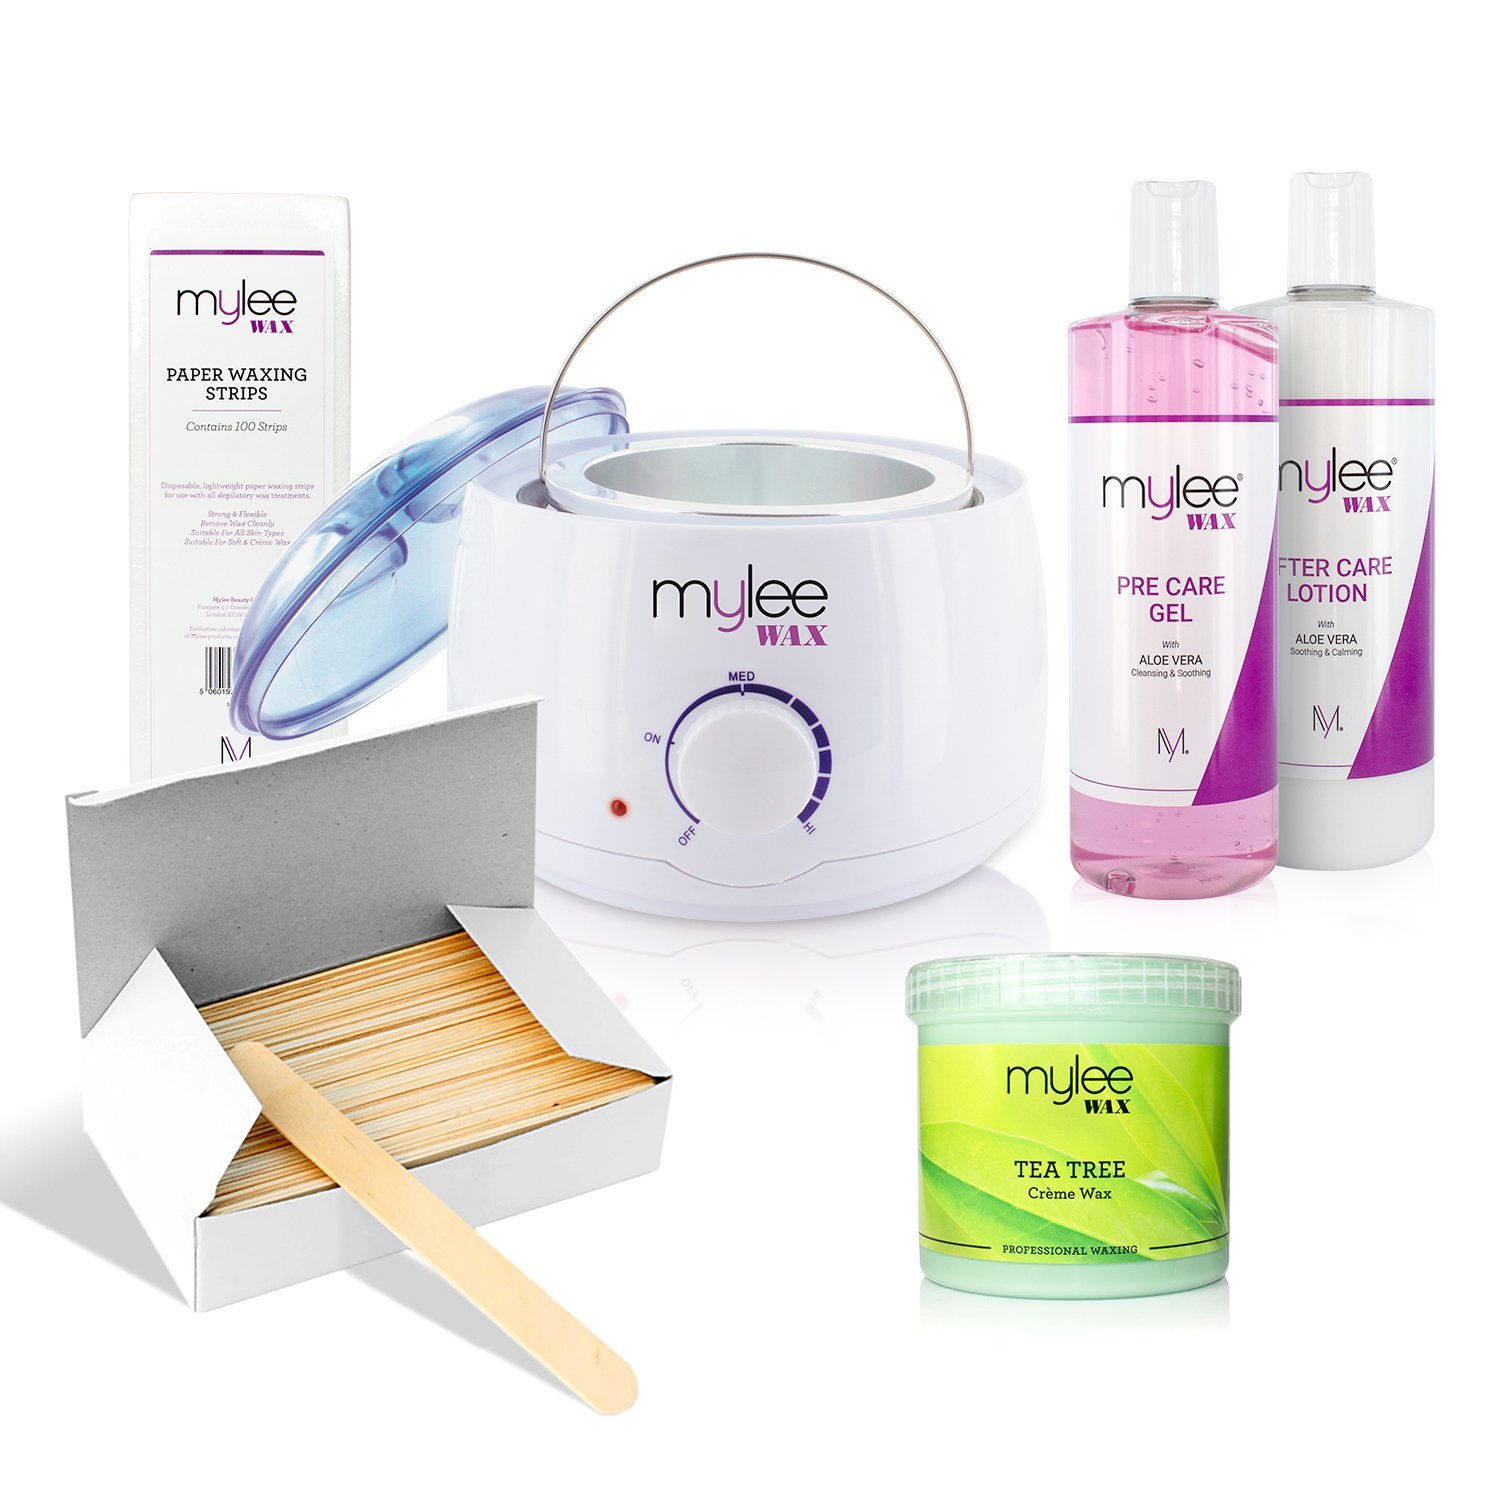 Mylee Complete Waxing Kit with Heater + Strips + Spatulas + Pre & After Care Lotion (Kit + Tea Tree Wax)